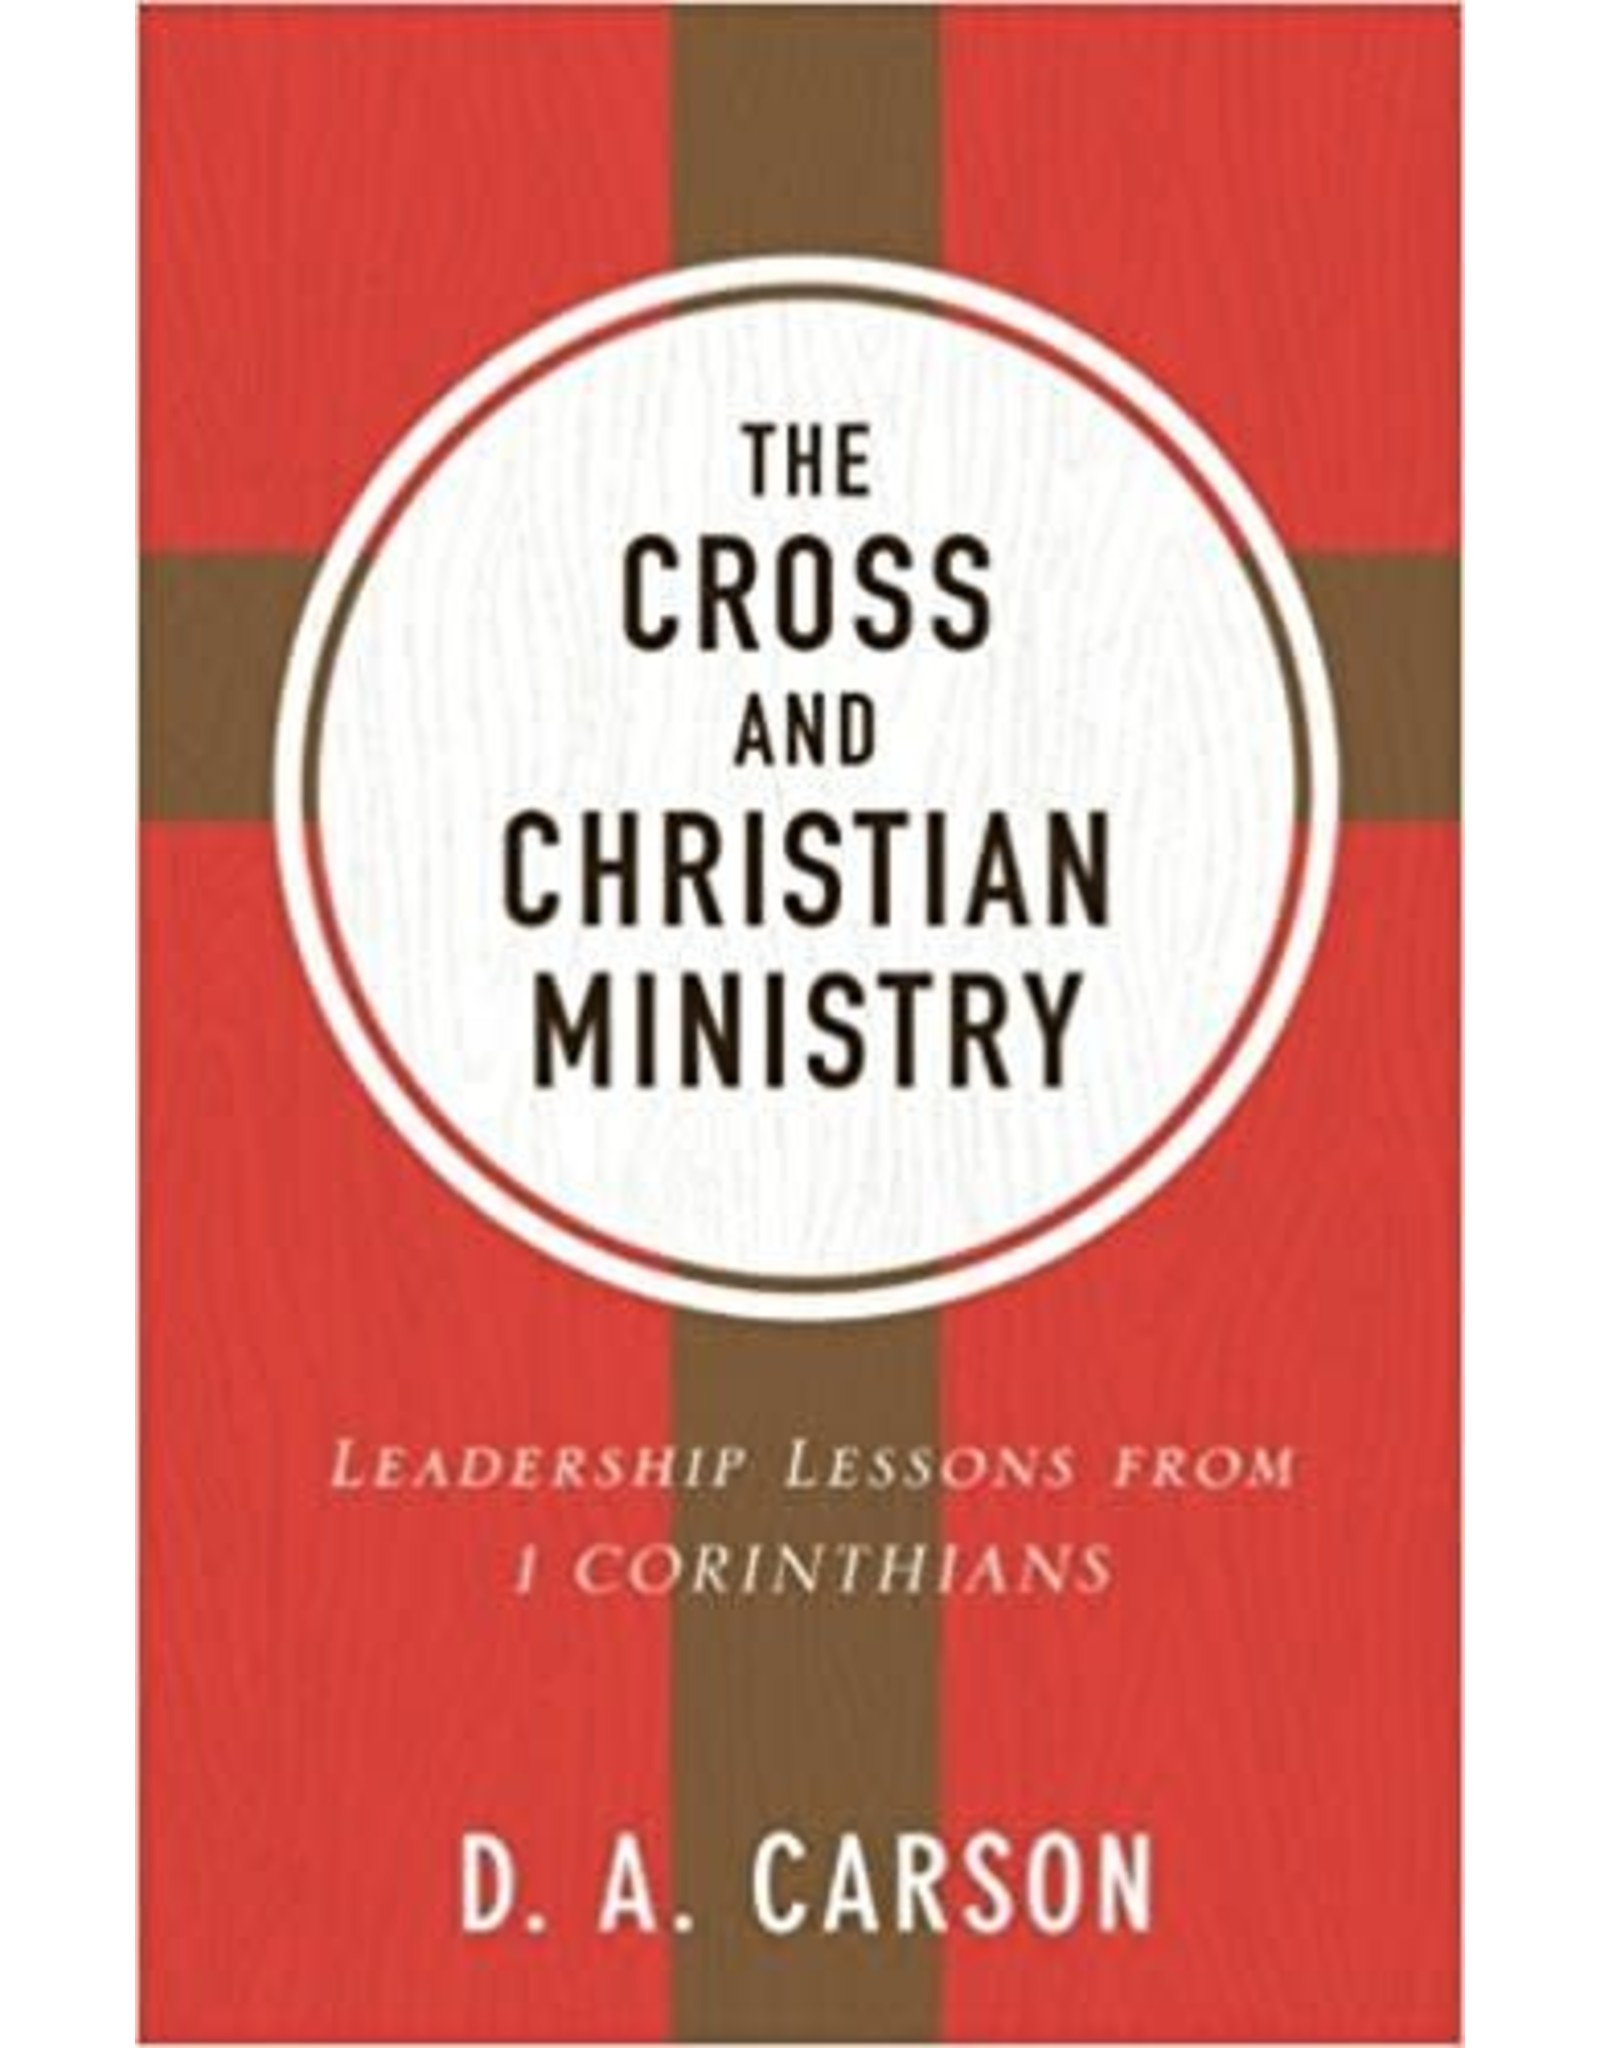 Baker Publishing Group / Bethany The Cross and Christian Ministry: Leadership Lessons from 1 Corinthians